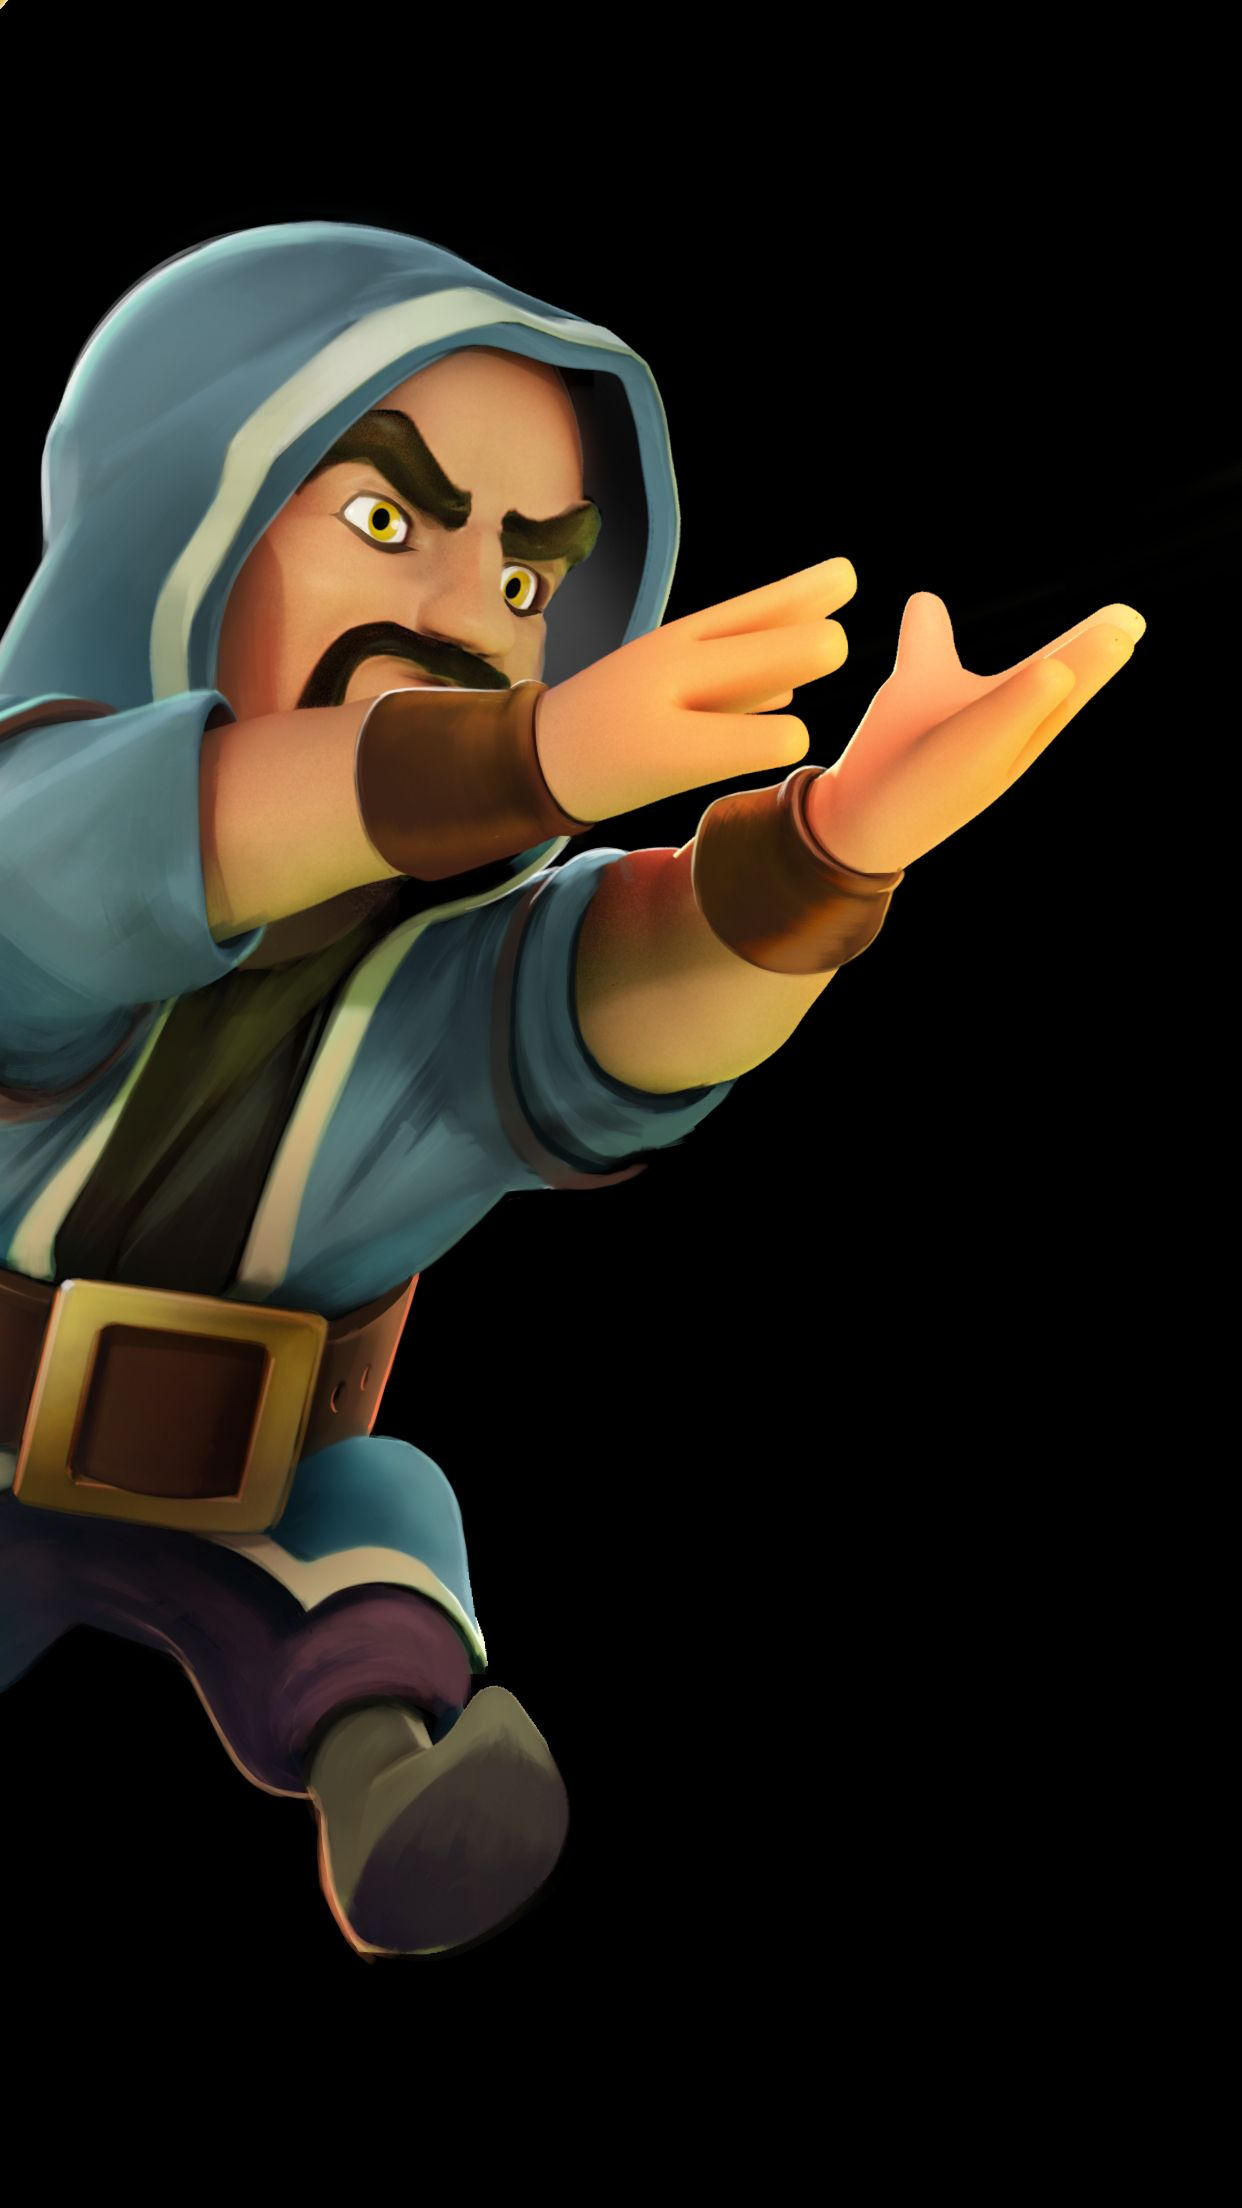 Wallpaper Hd Iphone Clash Of Clans Wizard Desktop Clan For High ...